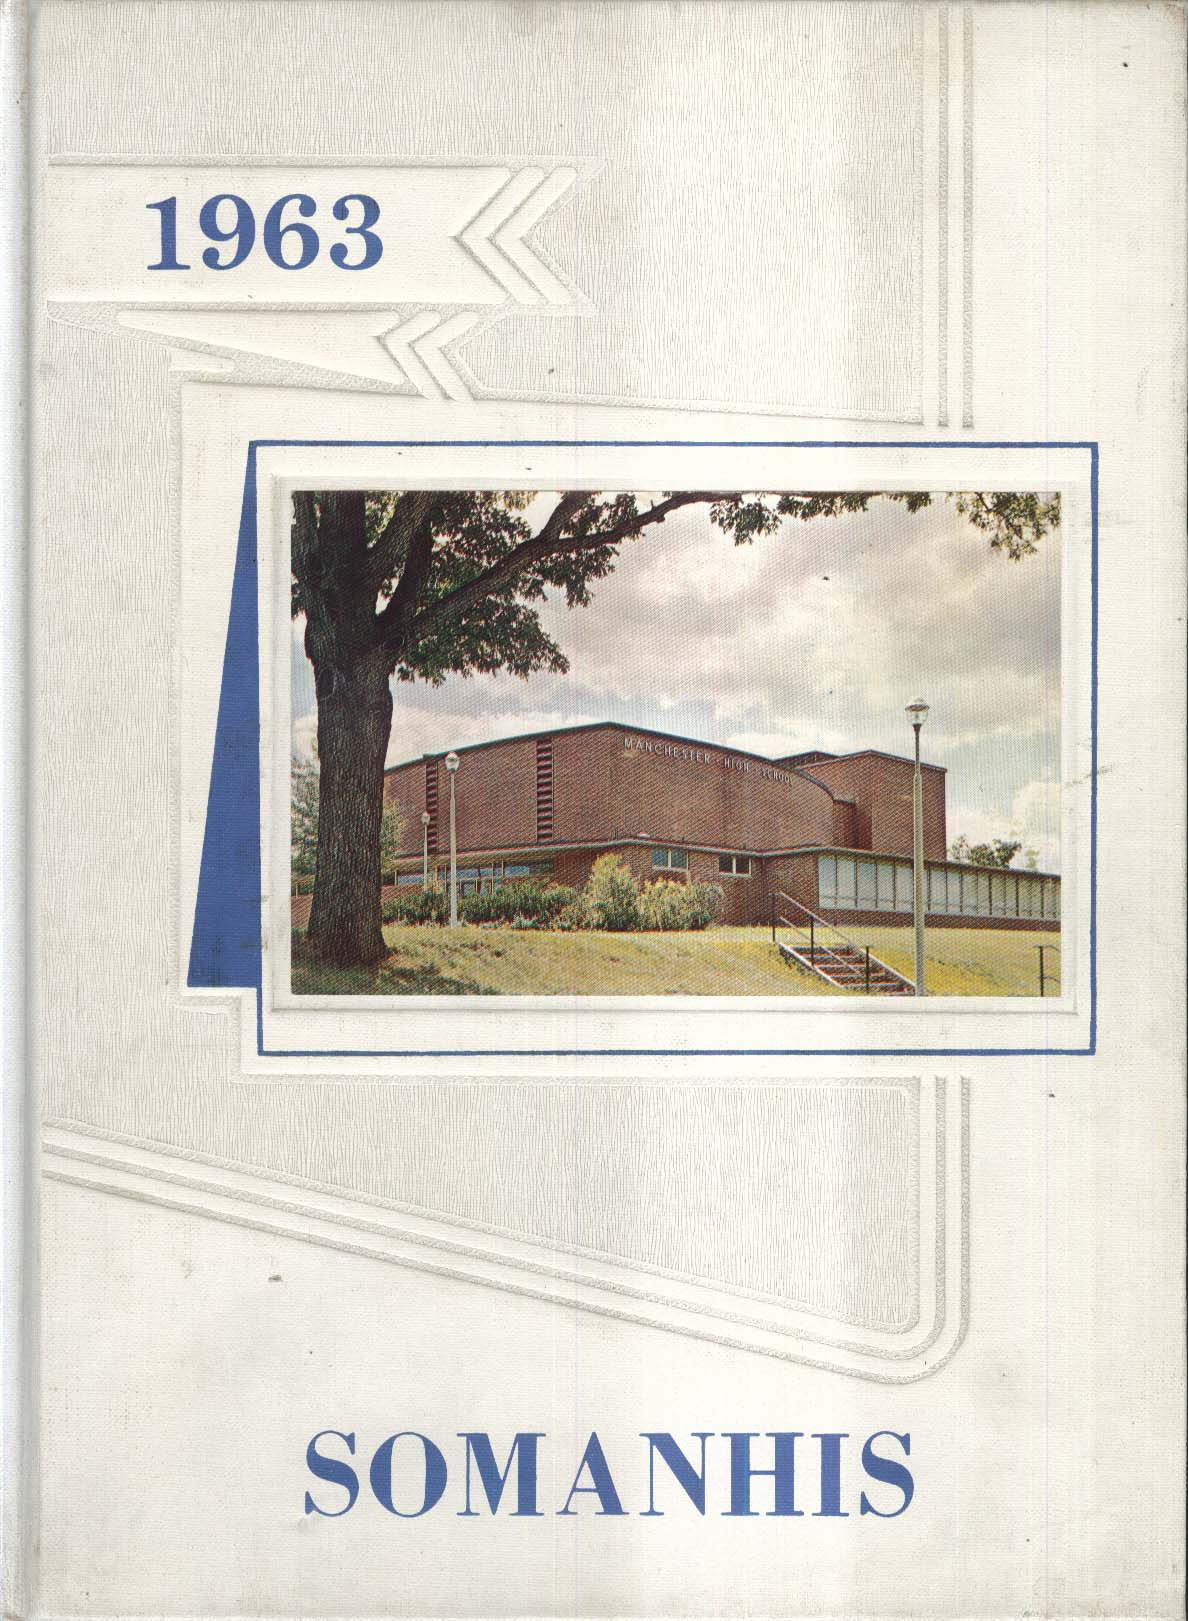 1963 Somanhis Manchester High School Manchester Connecticut Yearbook